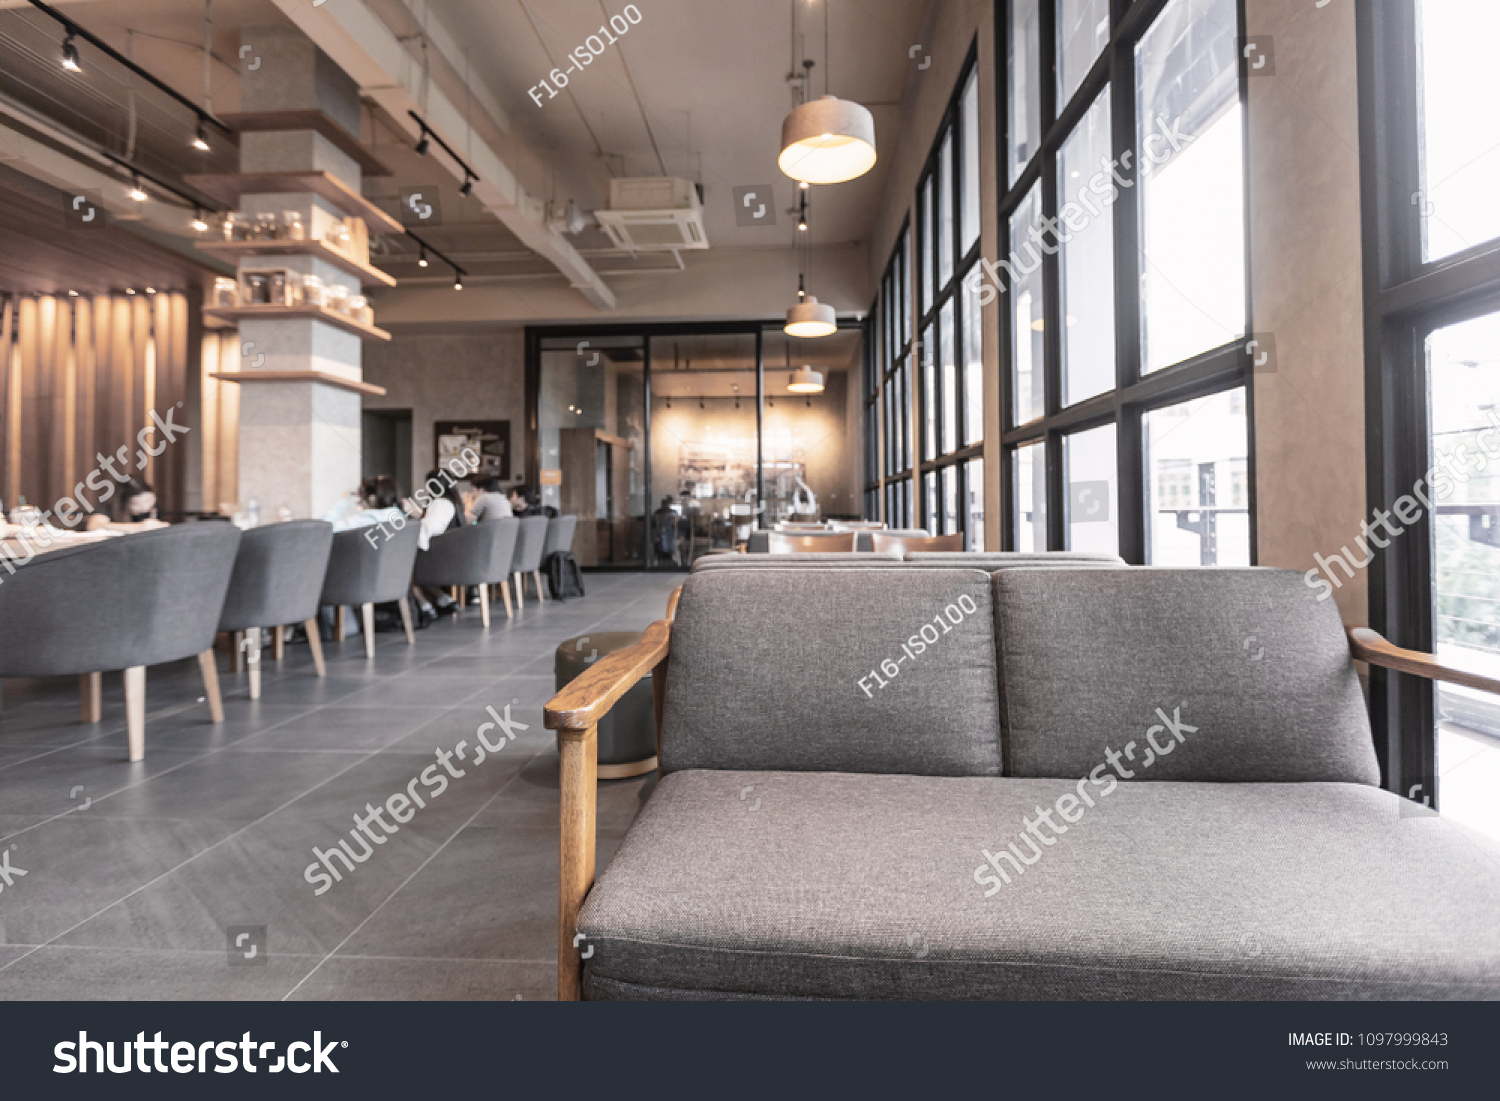 Modern interior of coffee shop decorate with wooden furniture in warm lighting tone for relaxing time